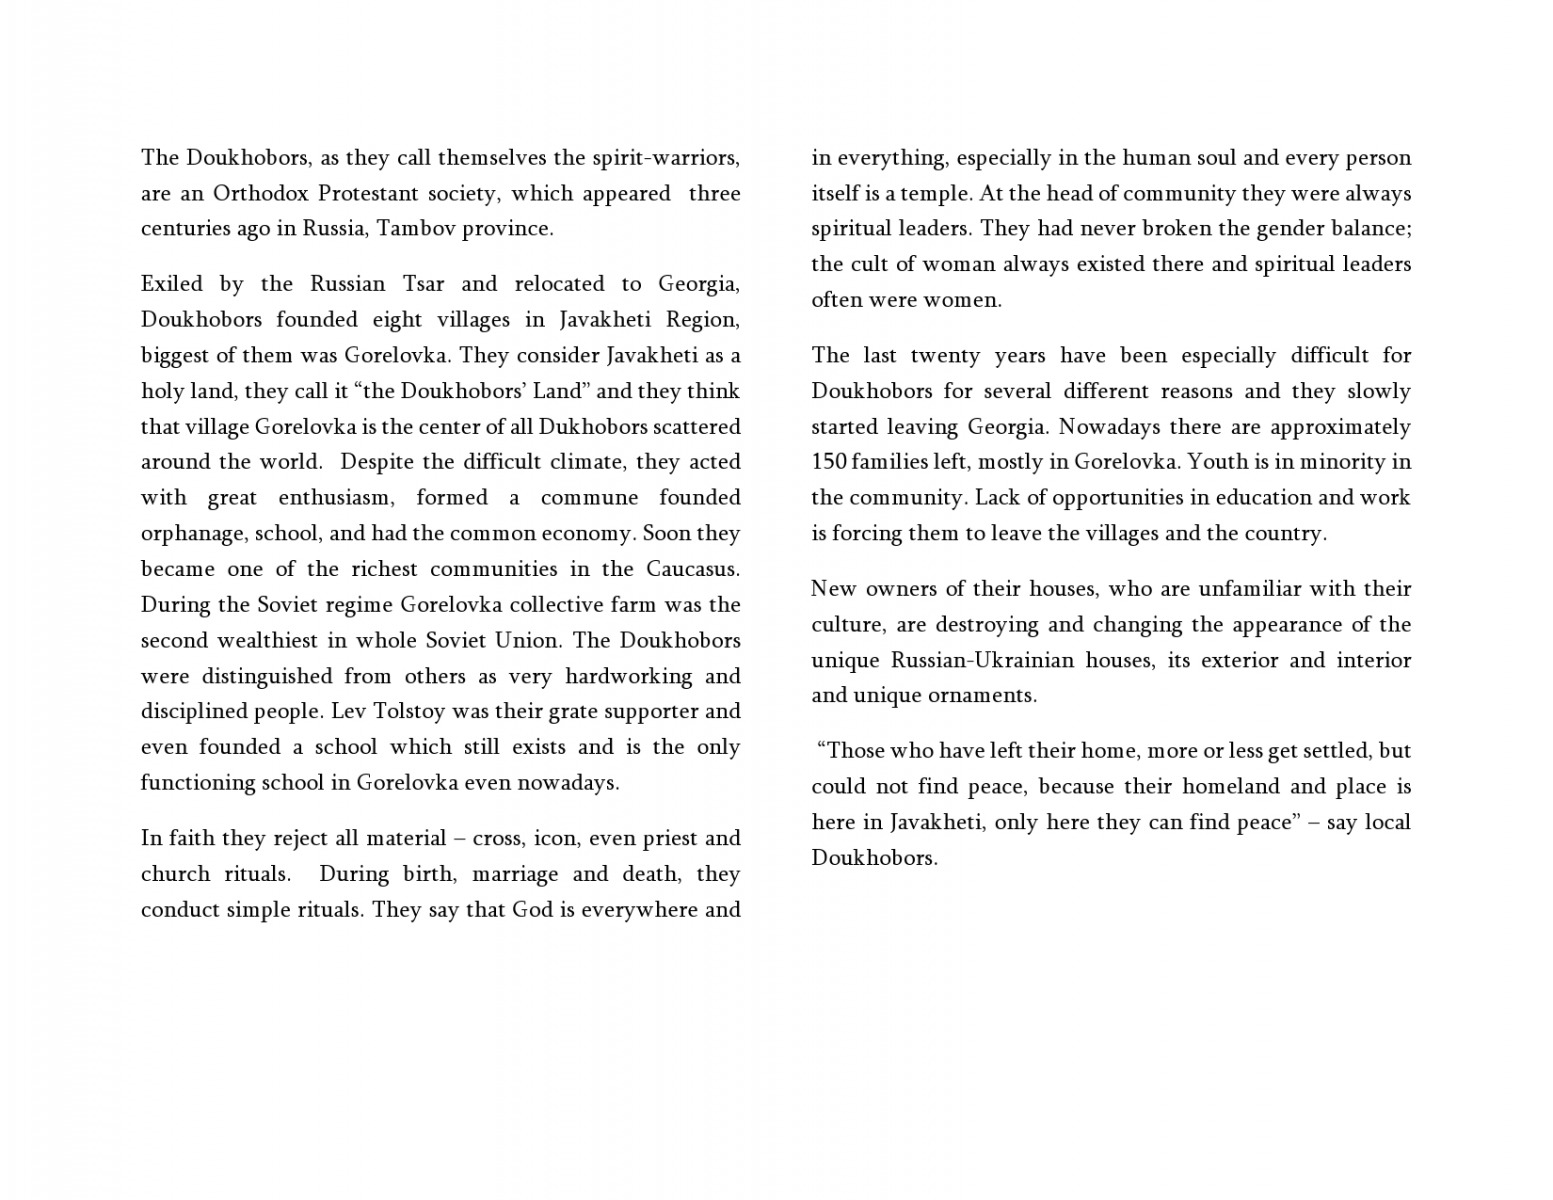 New-Microsoft-Word-Document-page0001